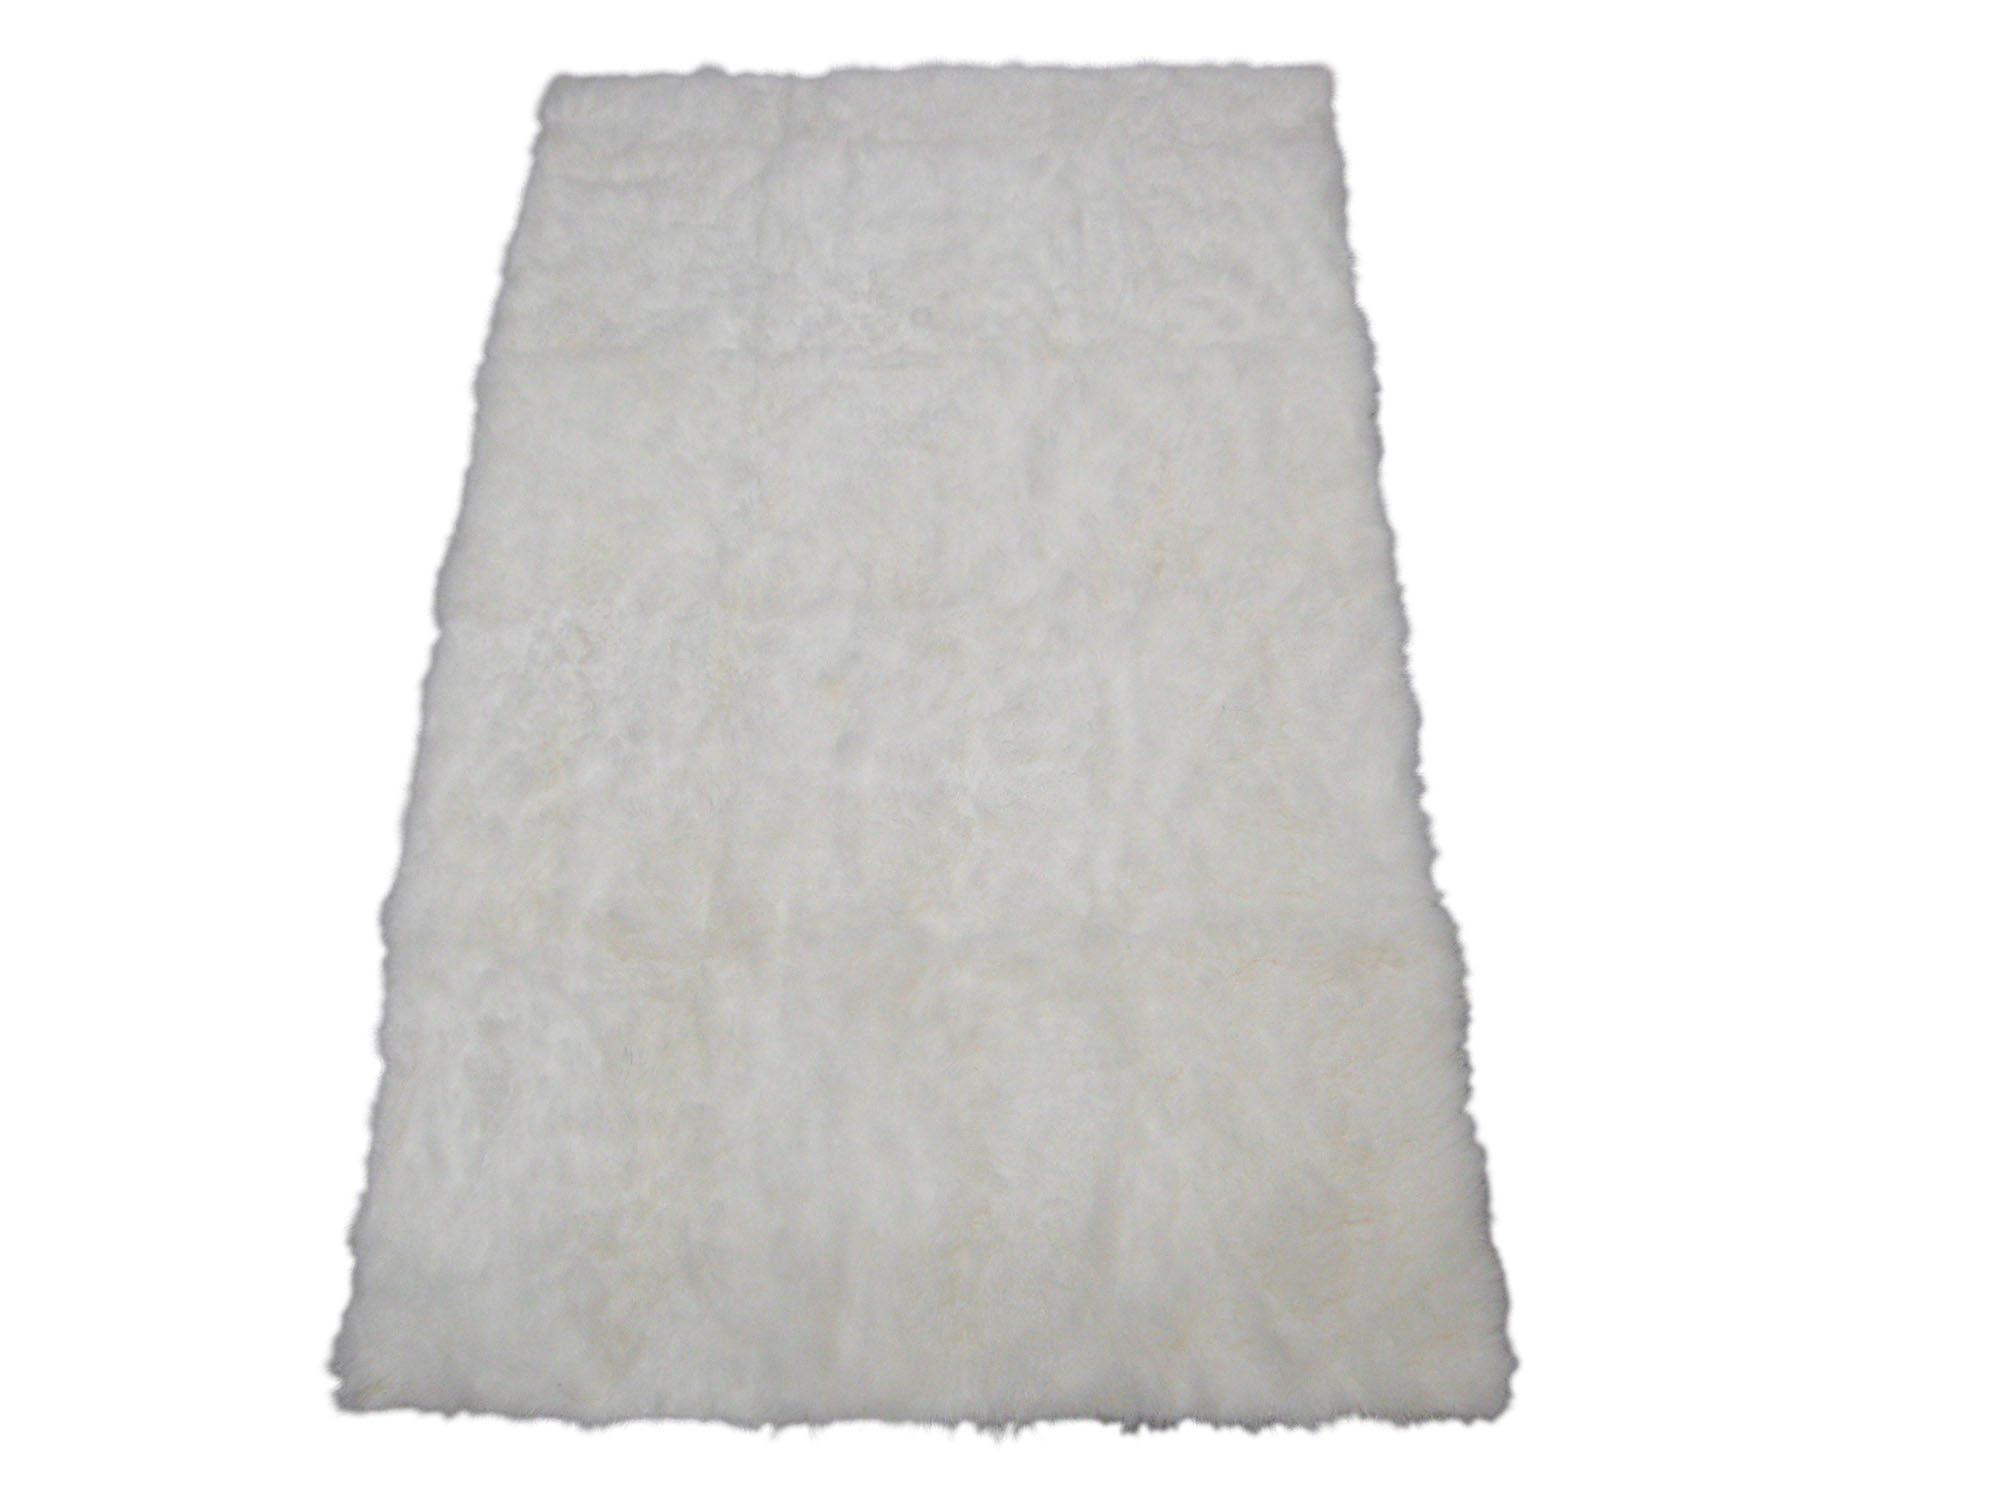 Cashmere Goat Rug: Natural White